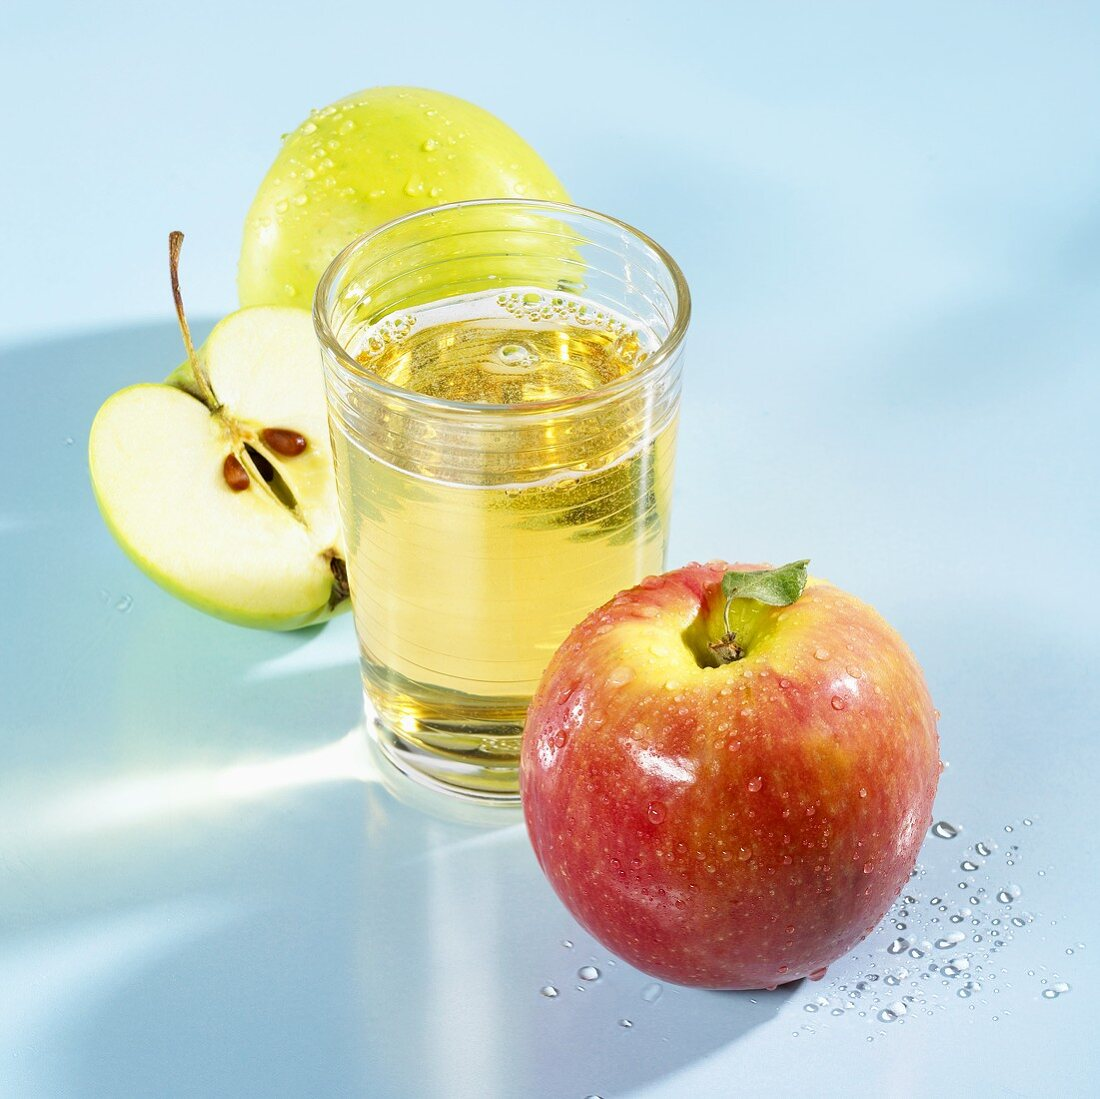 A glass of apple schorle with apples beside it